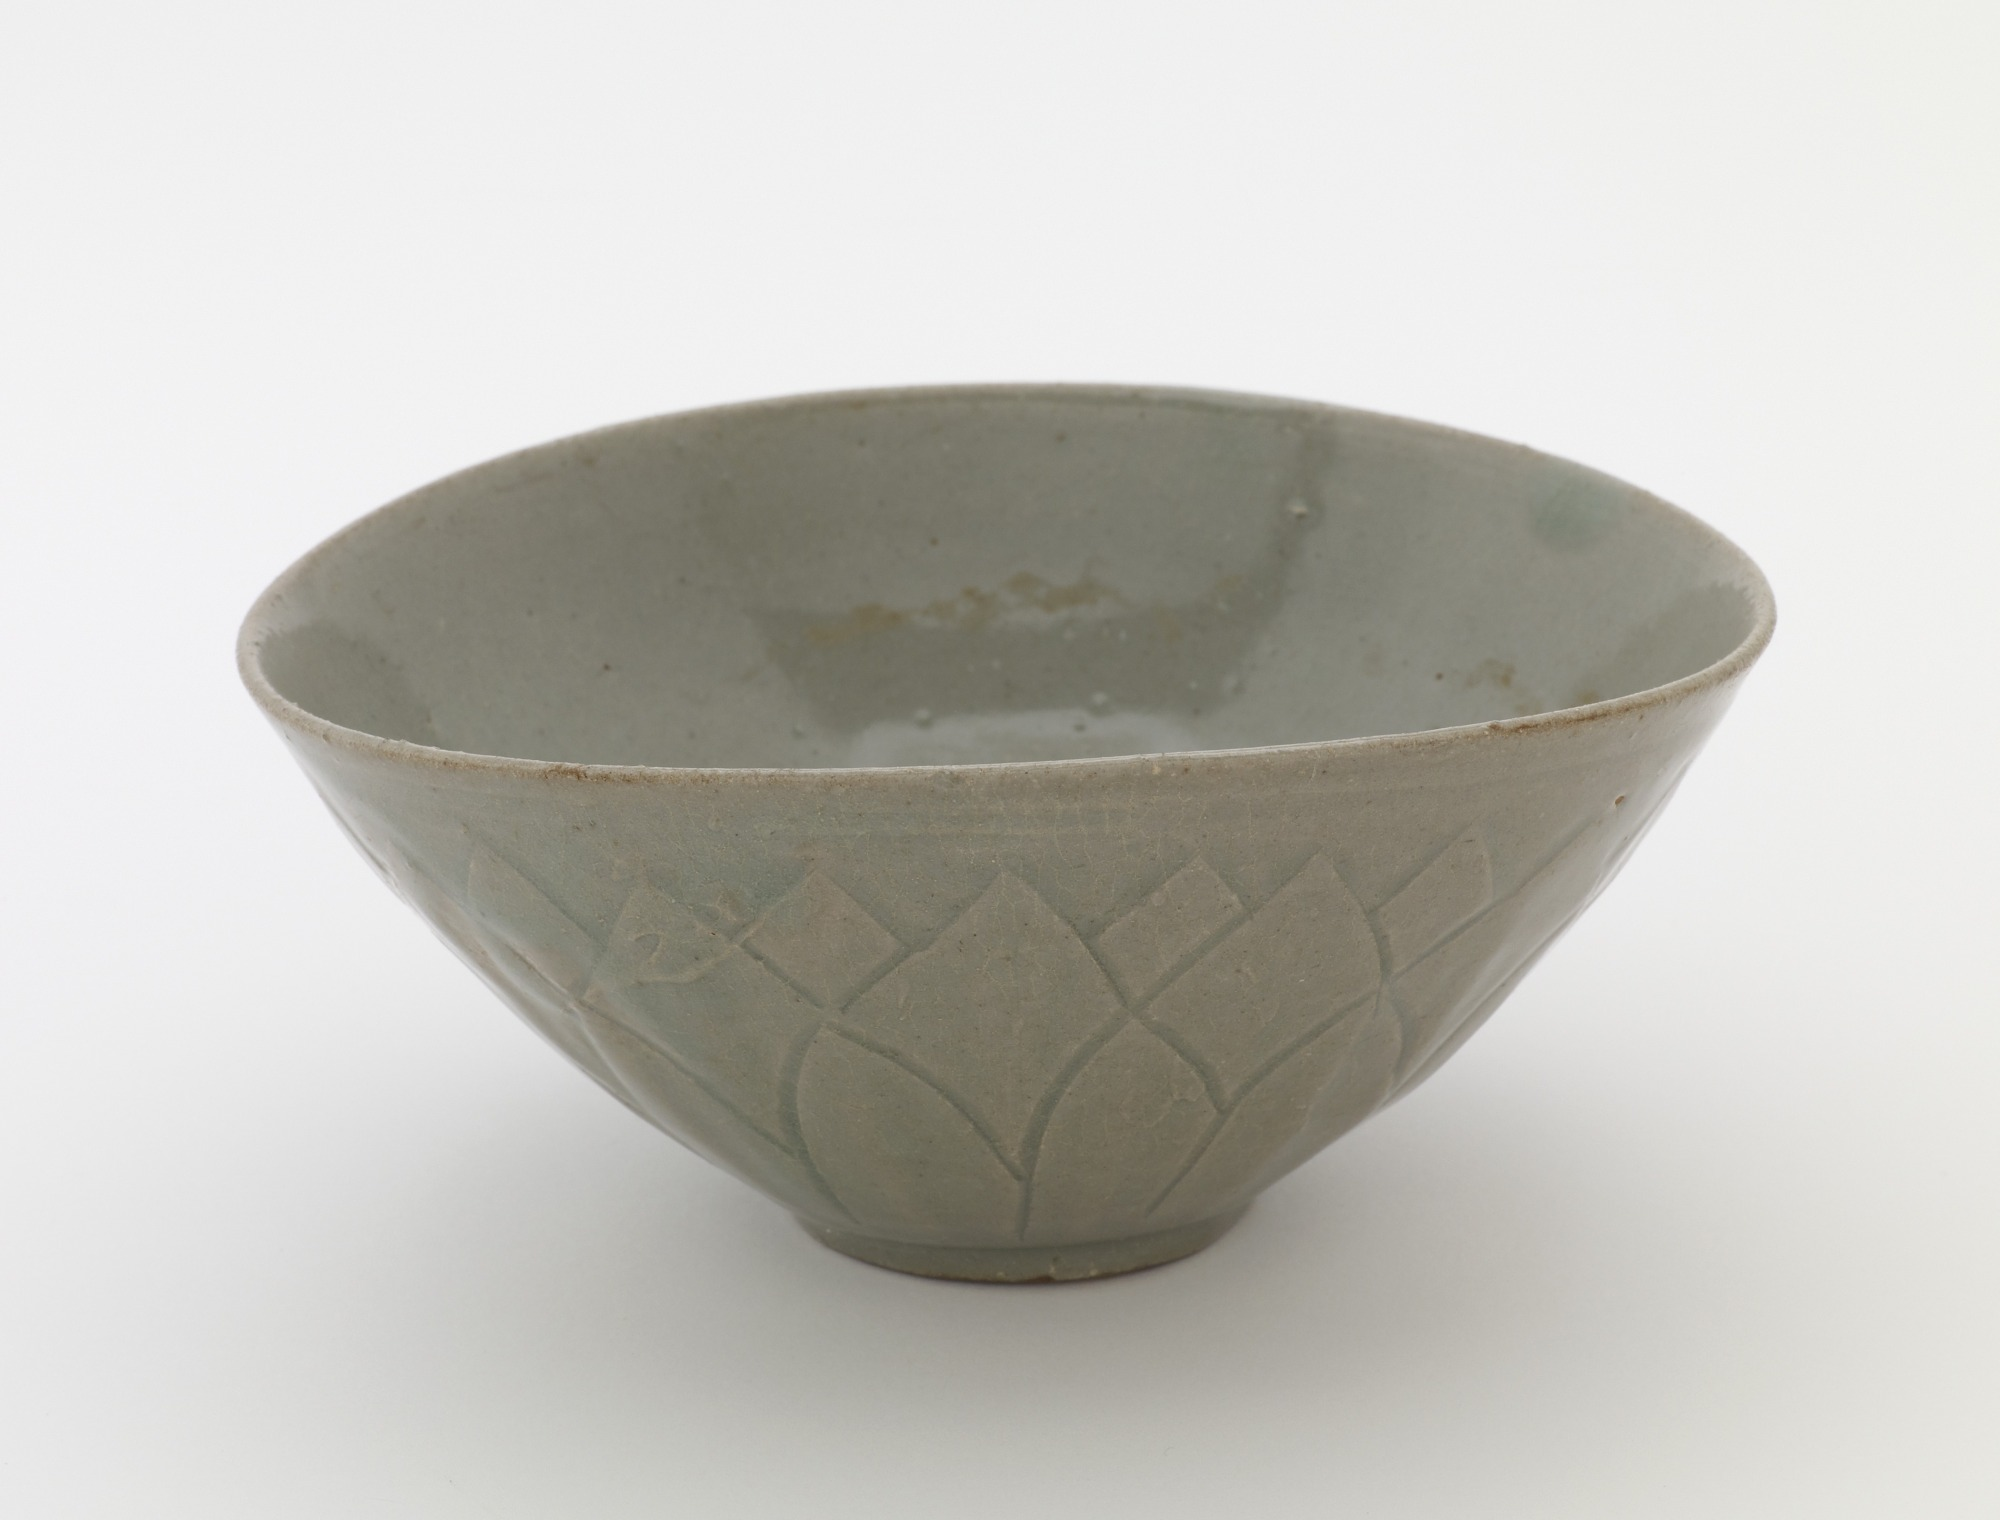 Bowl with molded and carved lotus decoration, 3/4 profile